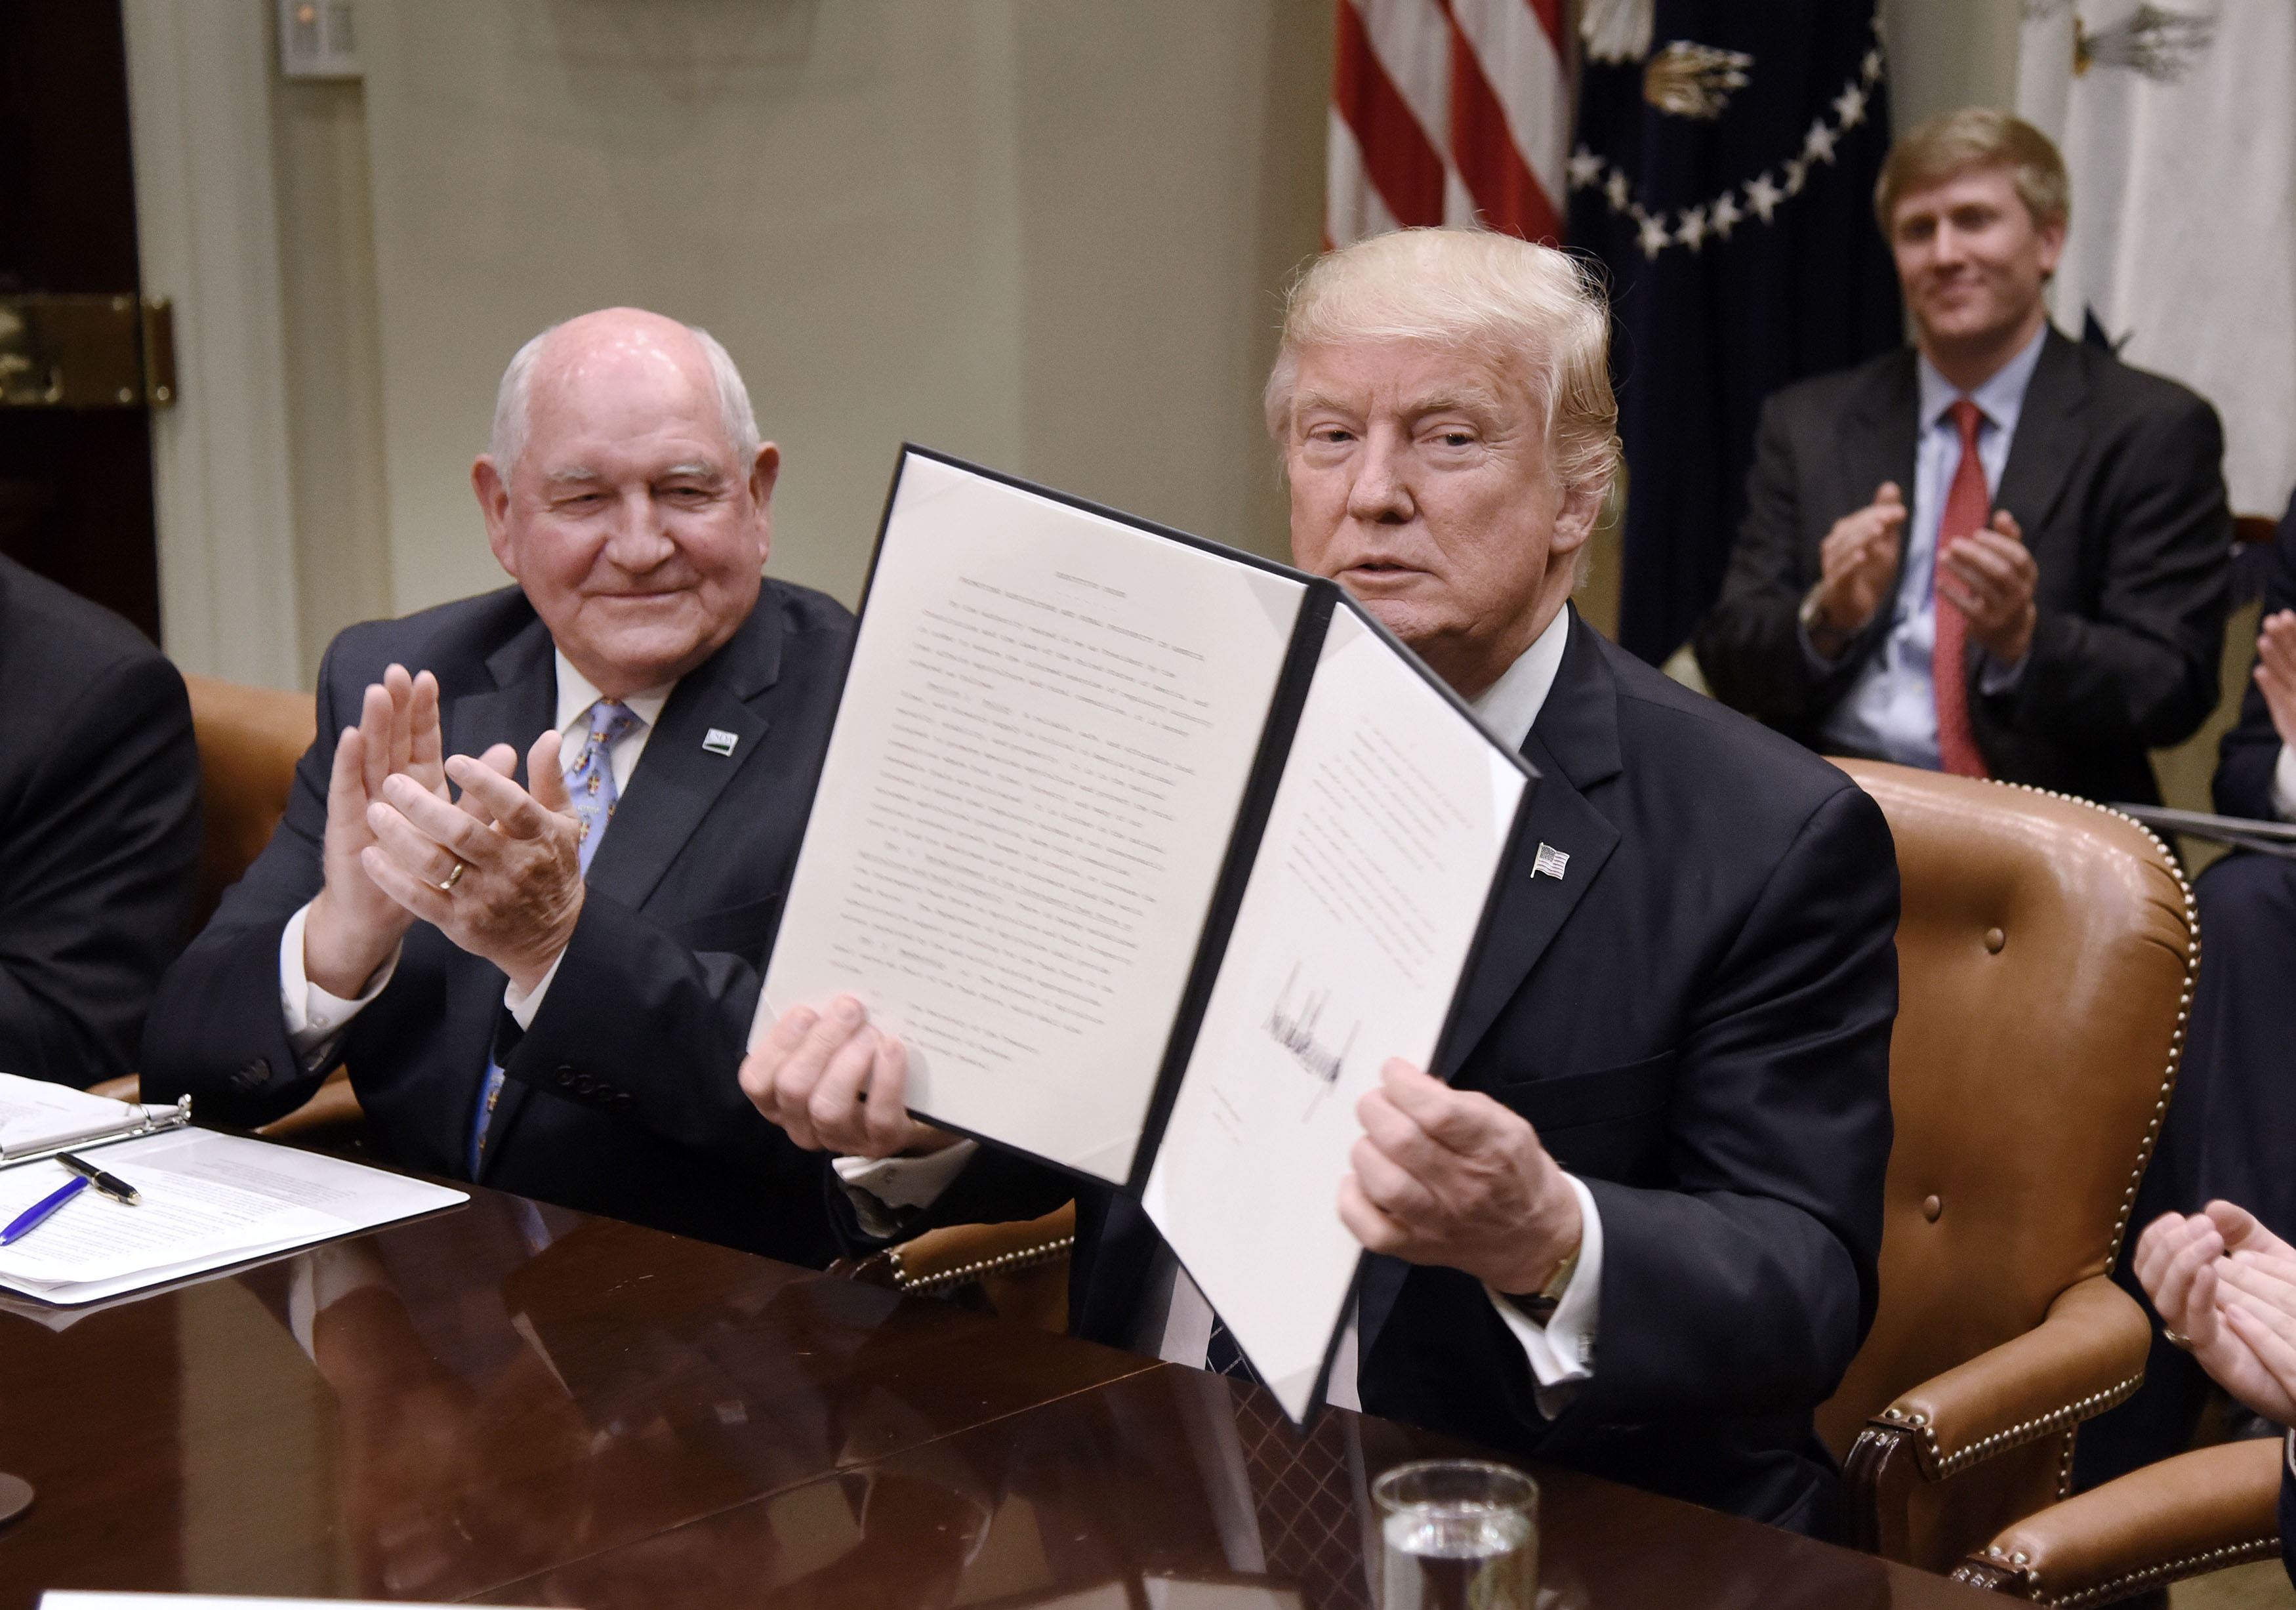 President Donald Trump signs the Executive Order Promoting Agriculture and Rural Prosperity in America as Agriculture Secretary Sonny Perdue looks on during a roundtable with farmers in the Roosevelt Room of the White House on April 25, 2017 in Washington, DC.